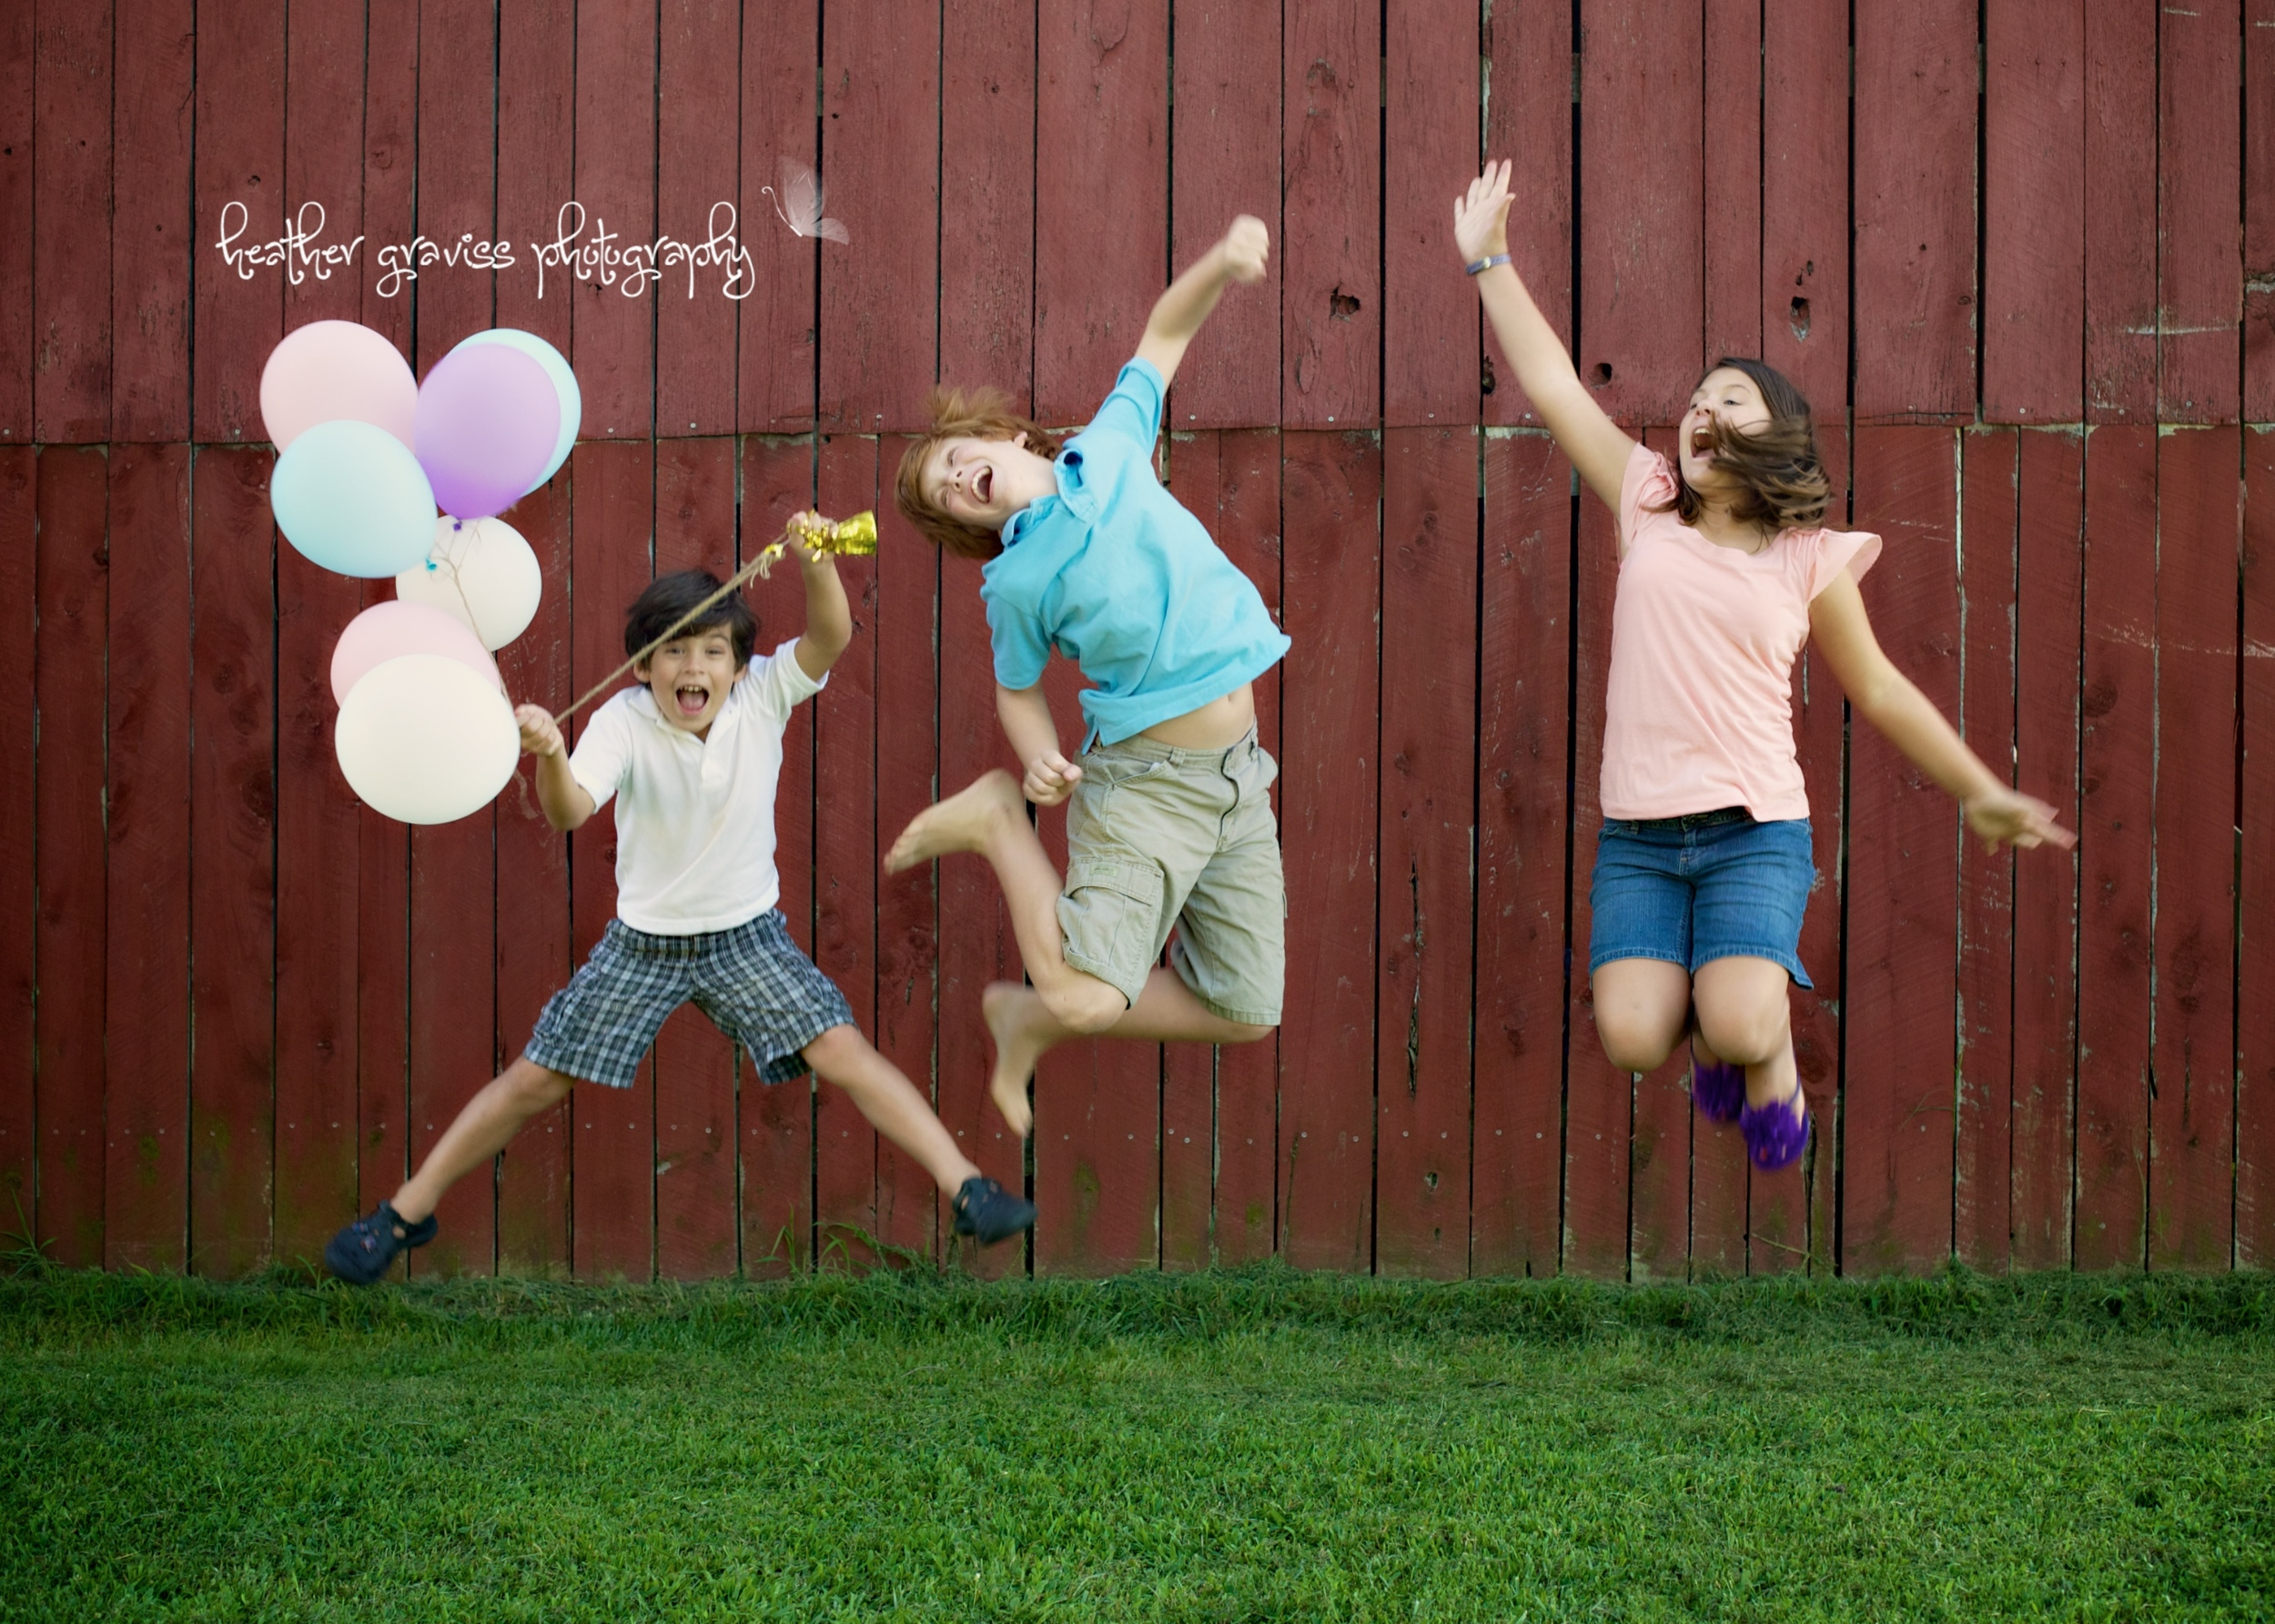 kids jumping with balloons